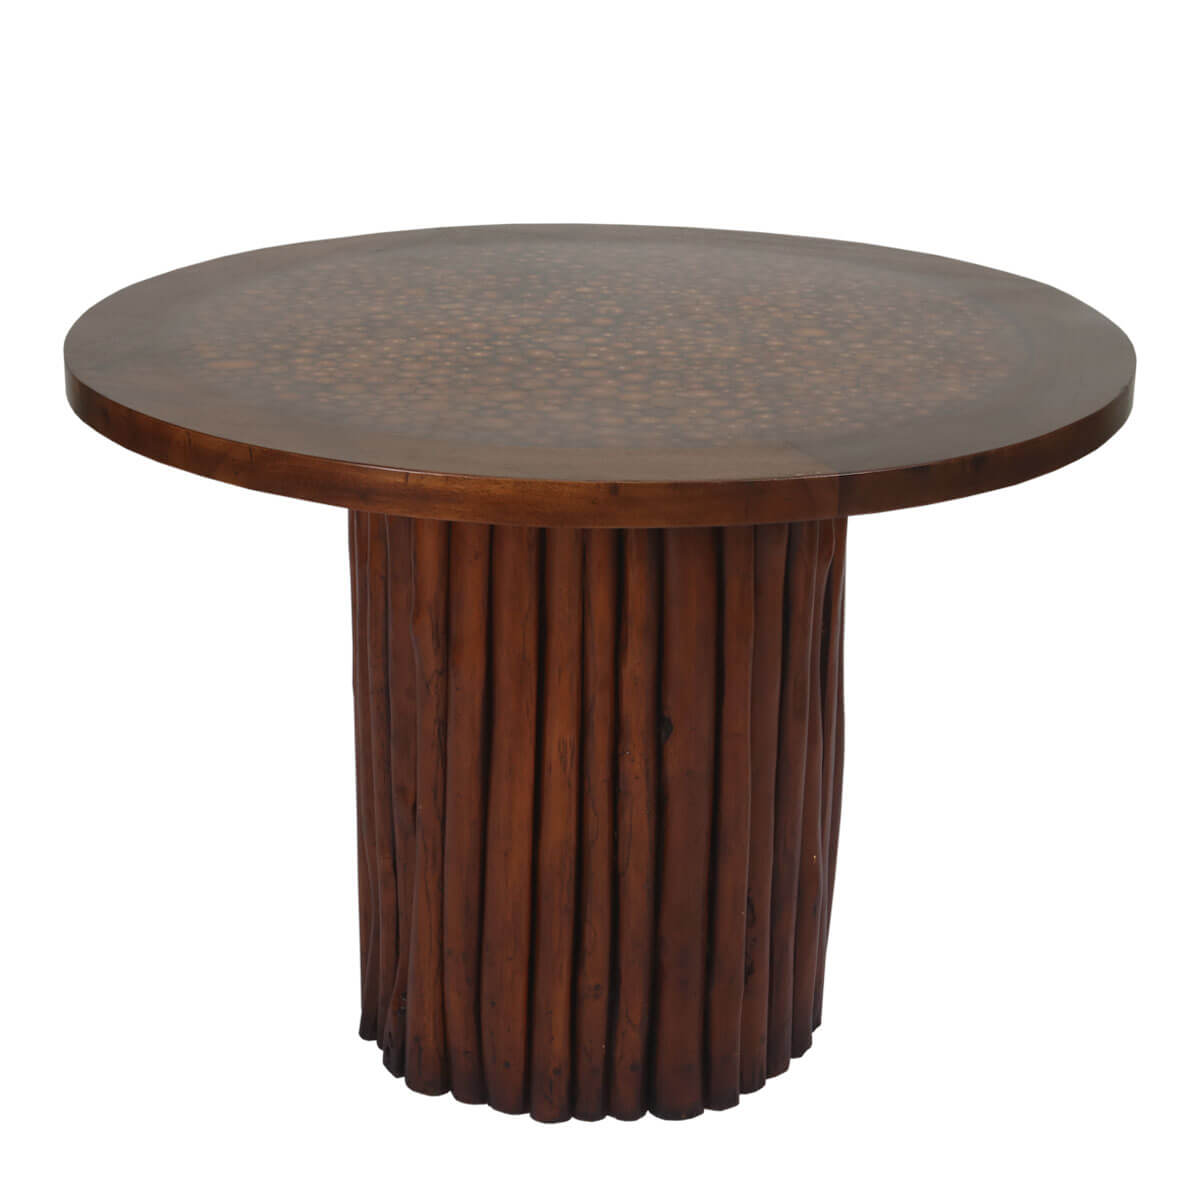 Parkerton Handcrafted Mahogany Wood Log Pedestal Round Dining Table